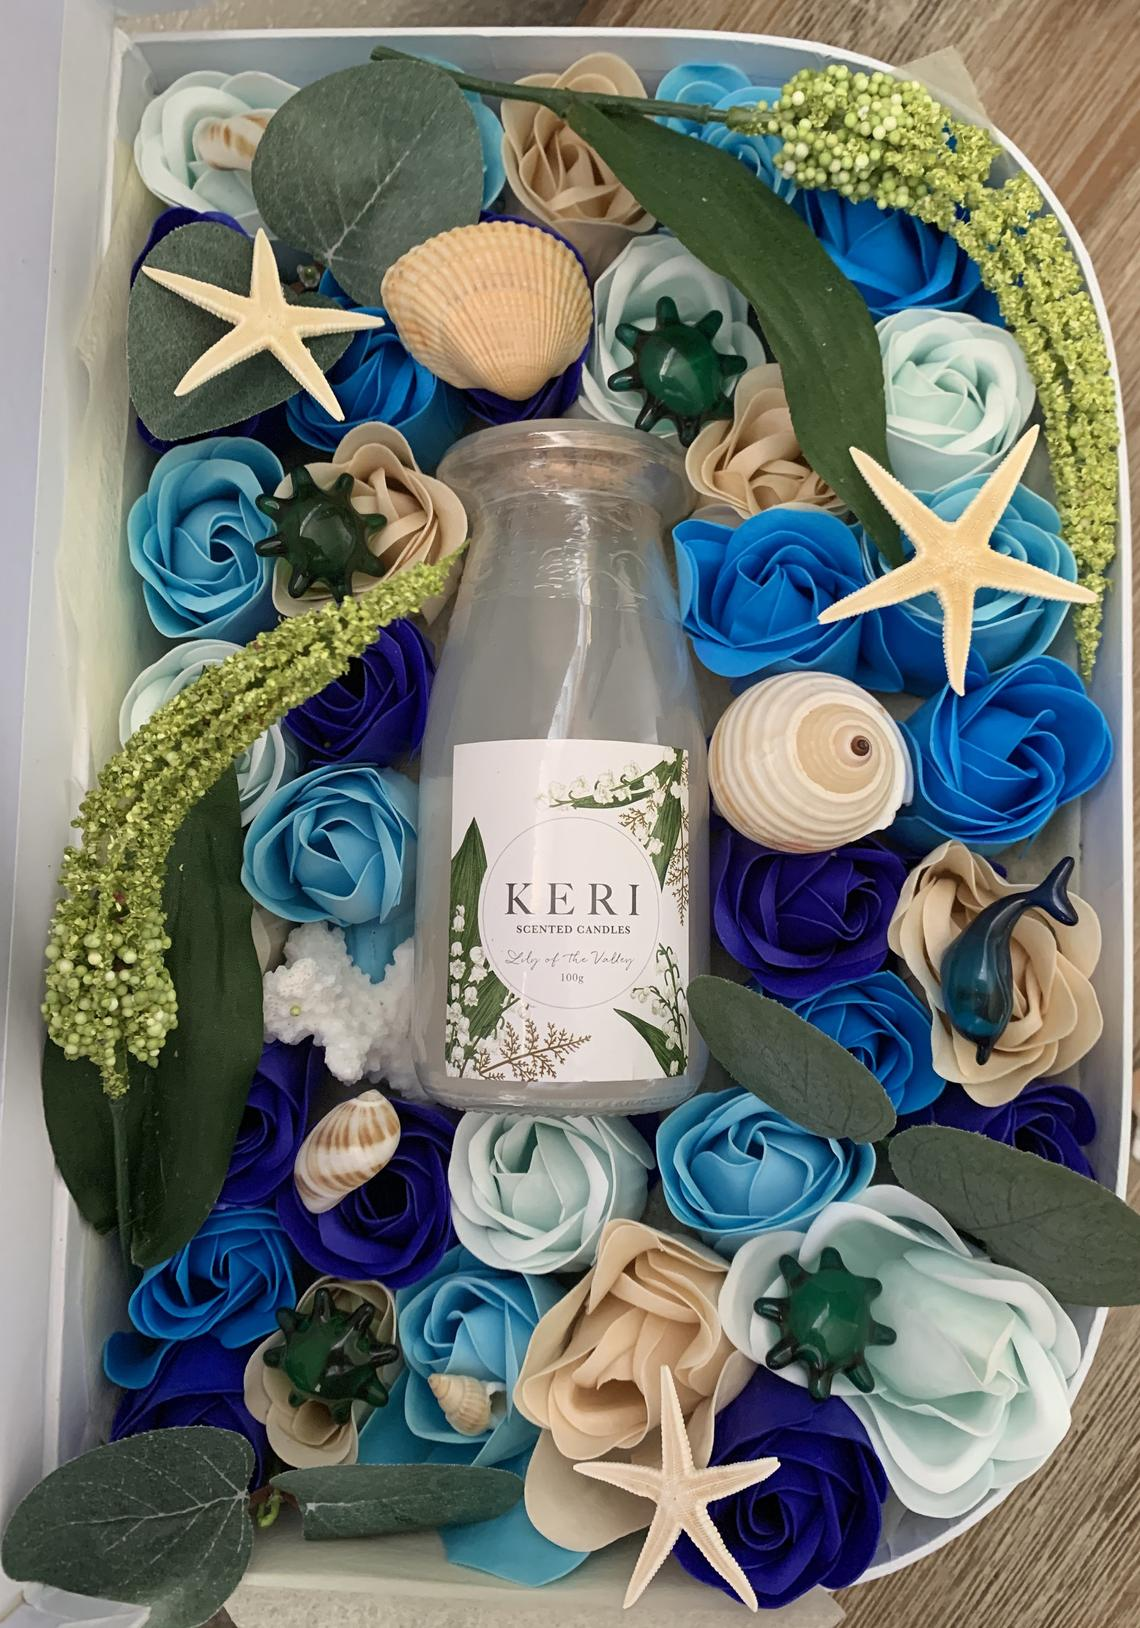 Soap Flowers in a blue suitcase beach theme with candle